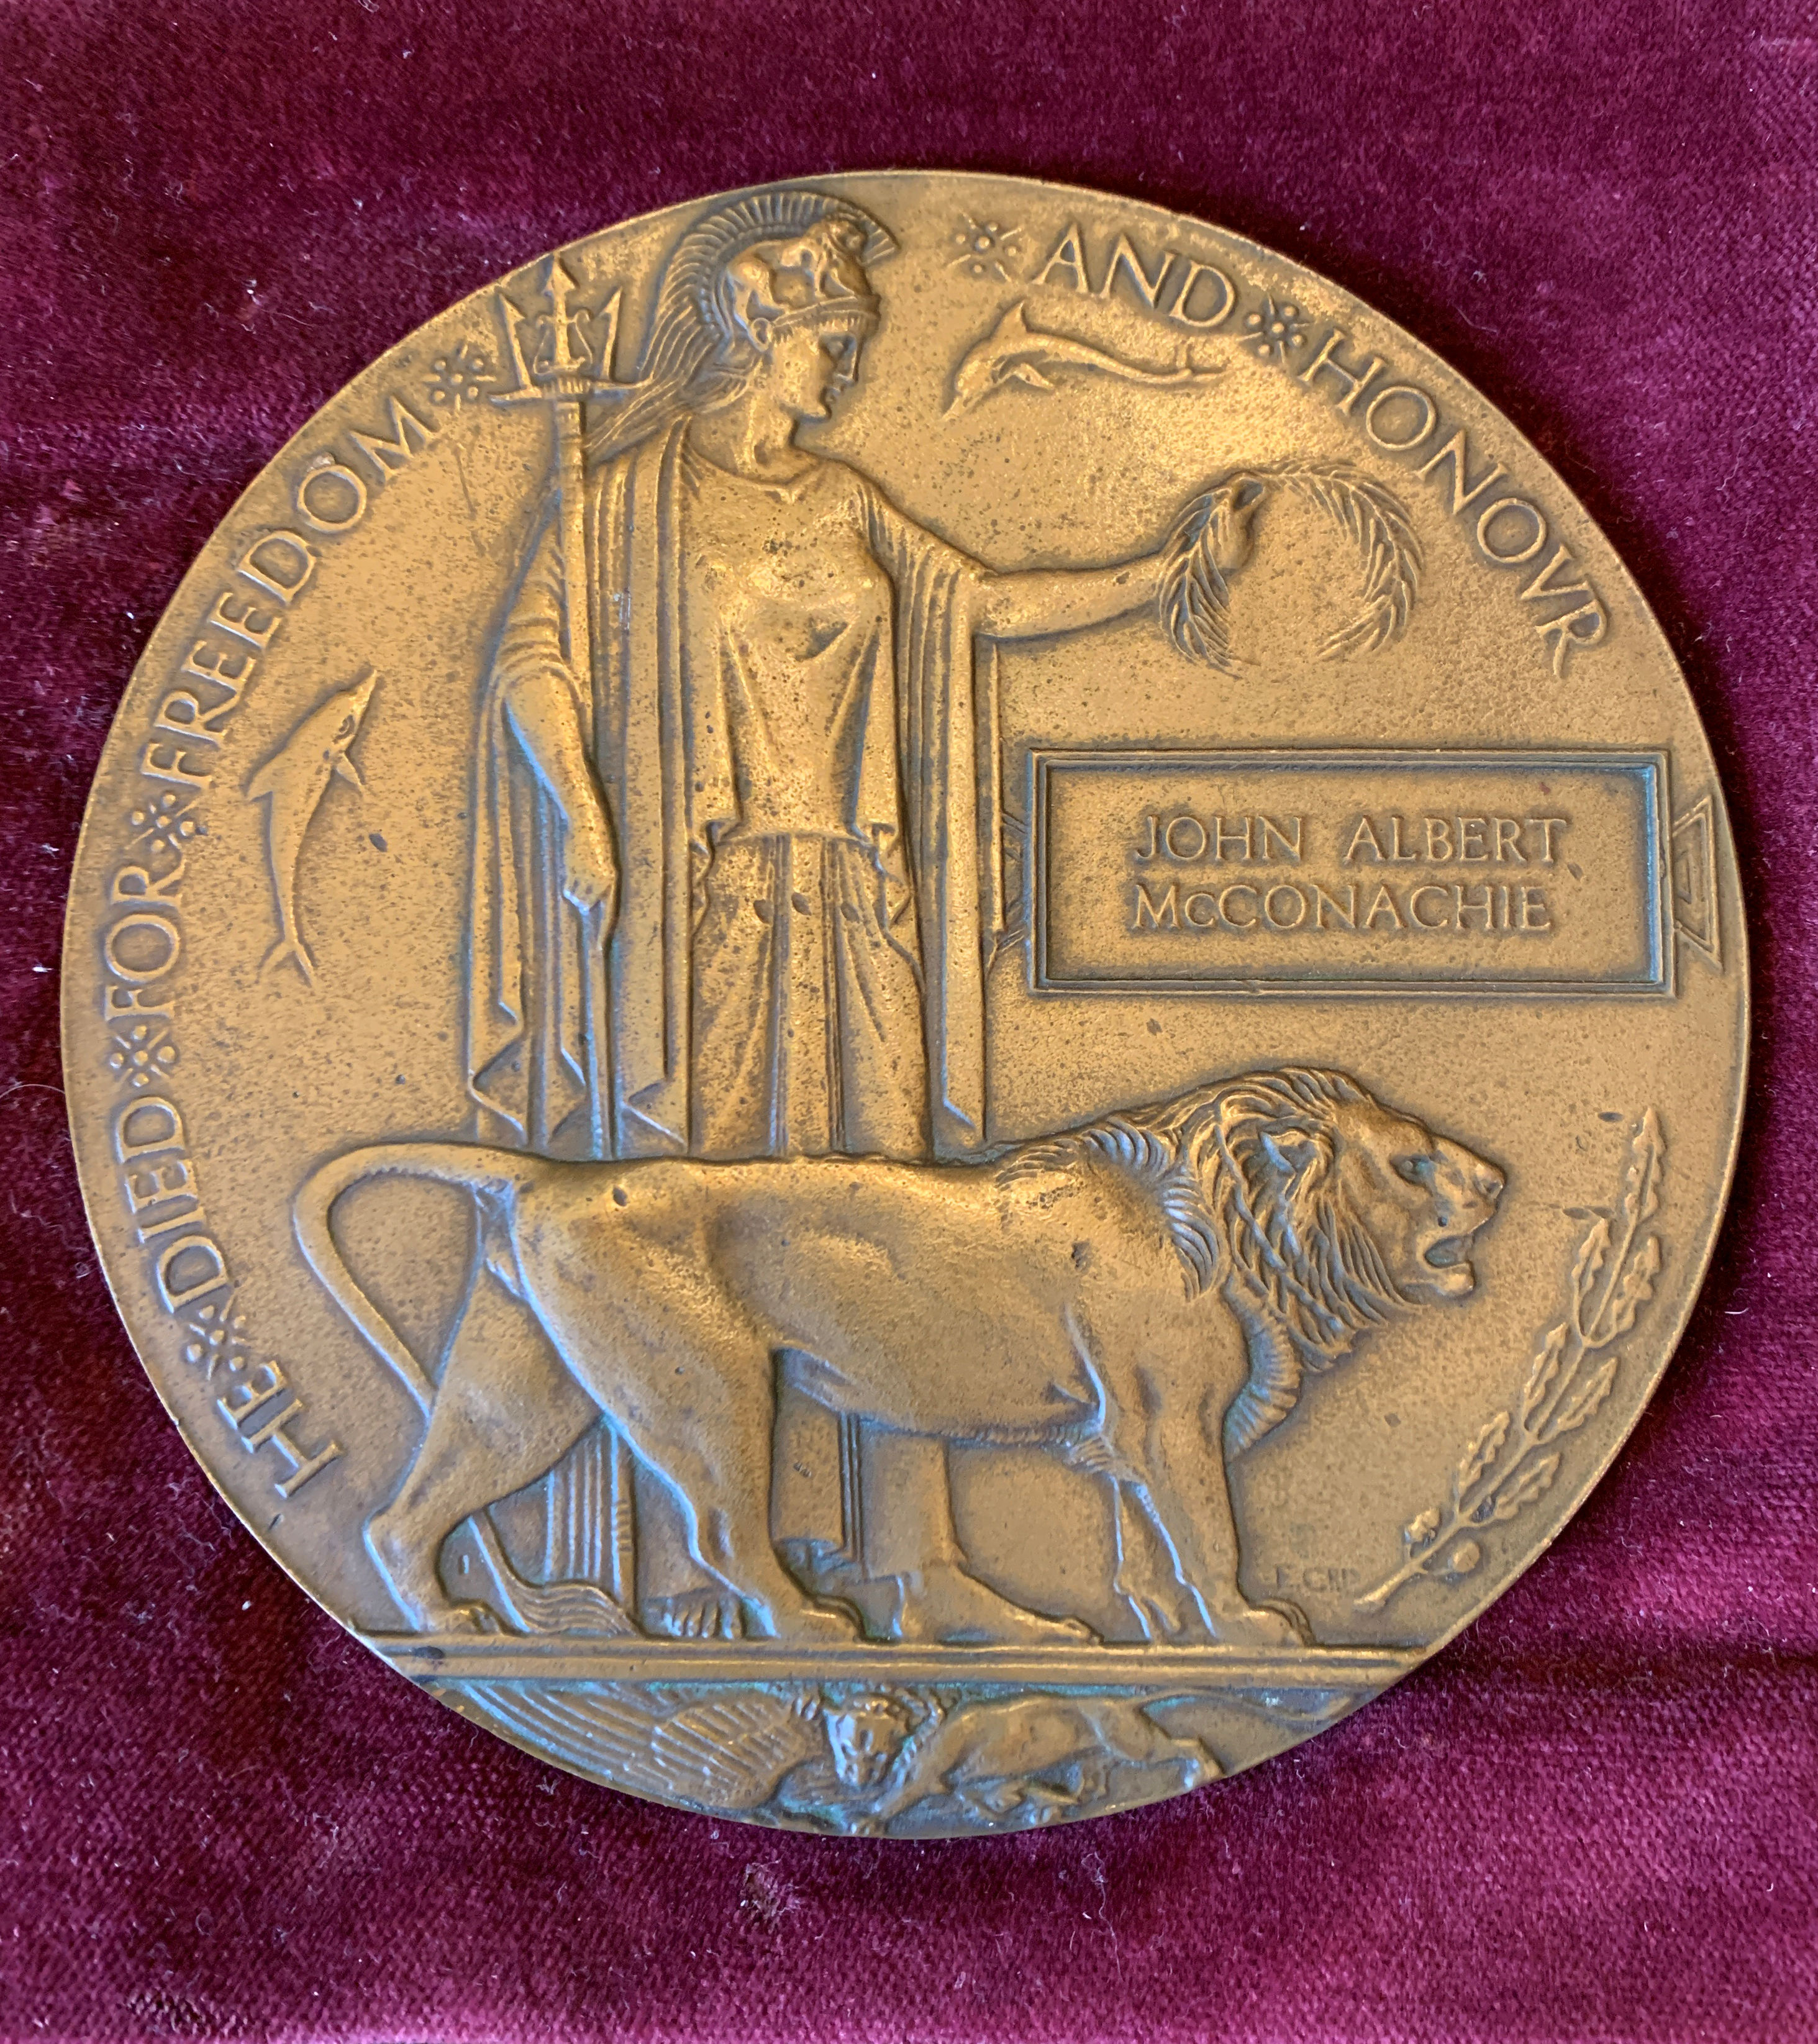 Memorial Plaque– My father had this hanging on his wall ever since I can remember and I would like it to be returned to a family member.